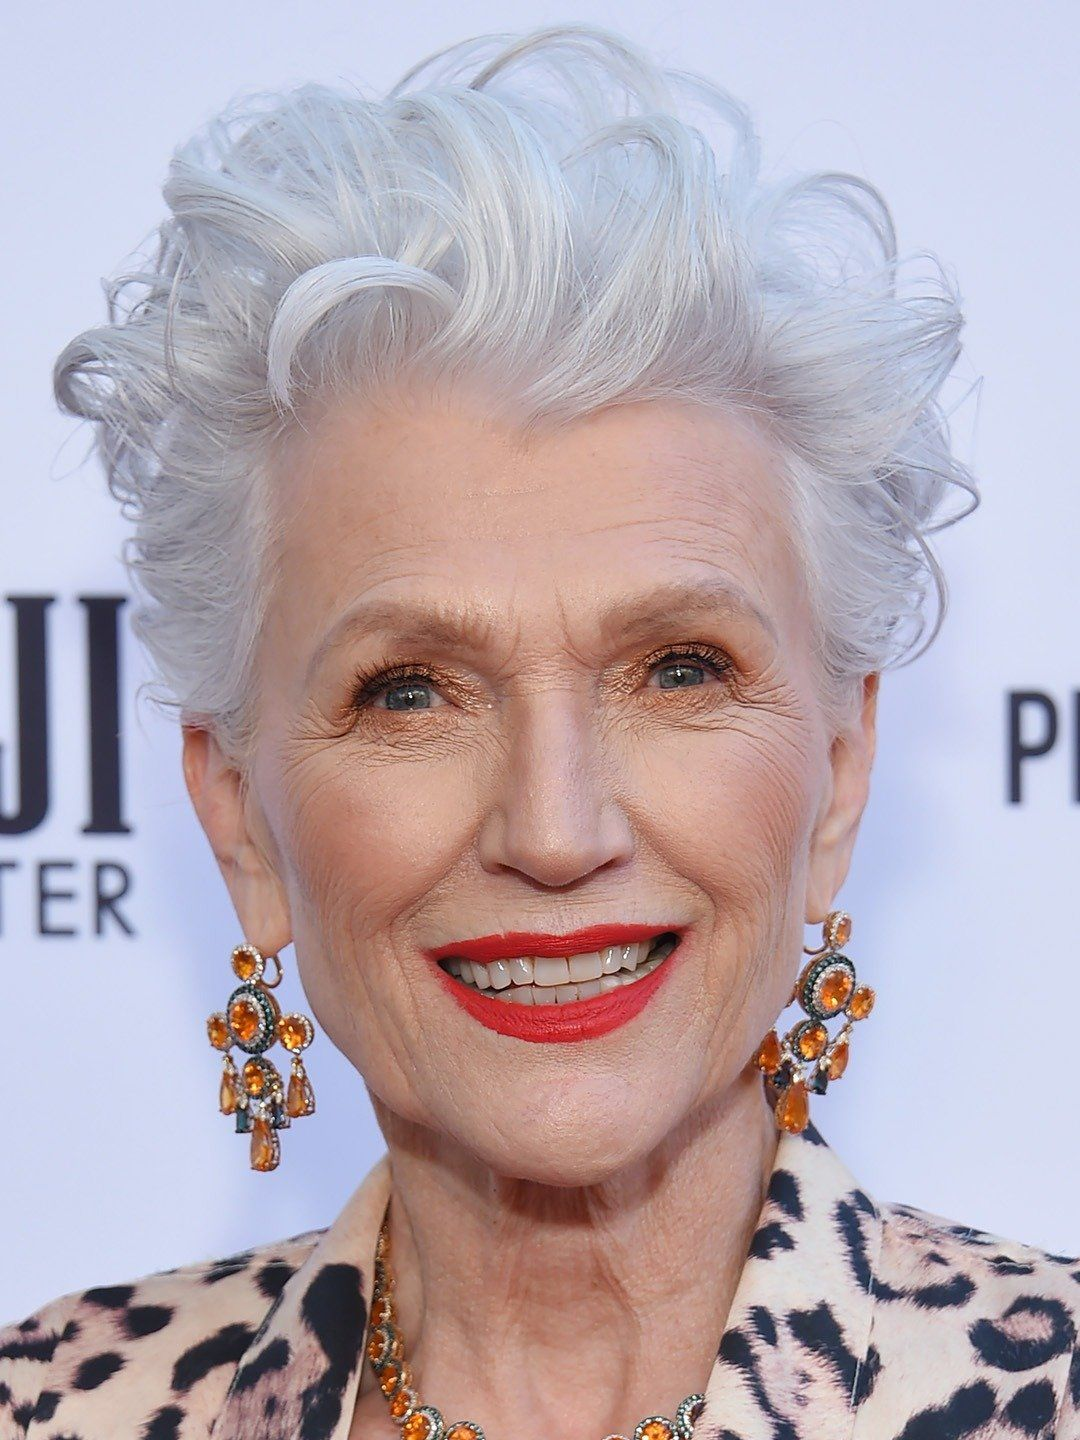 31 best images about Maye Musk on Pinterest | Models